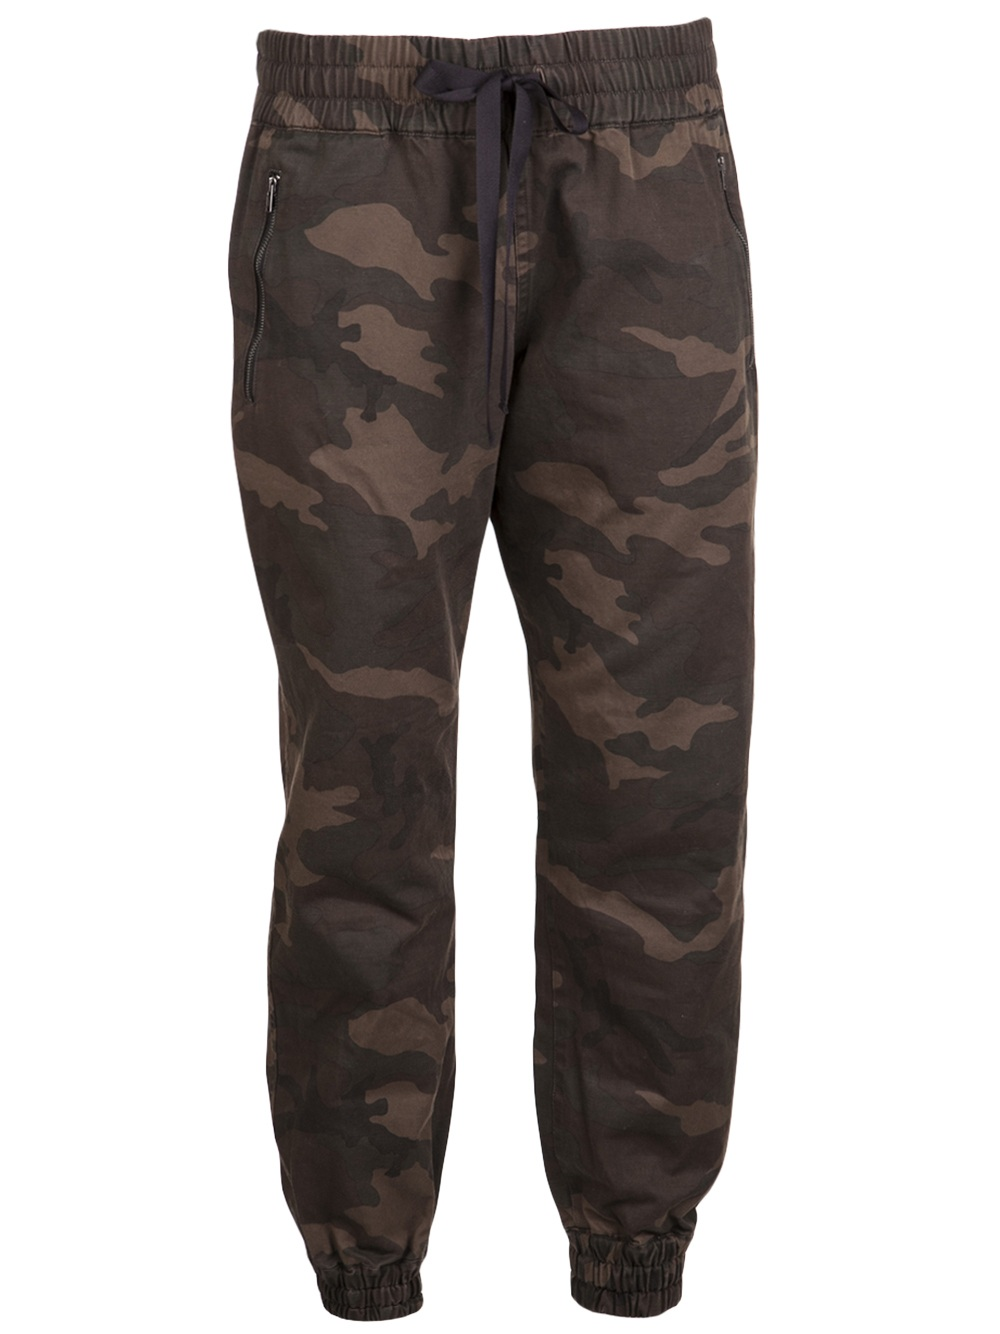 Cool Camo Leg Sweatpants For Men Streetmen Jogger Pants Men Joggers Women